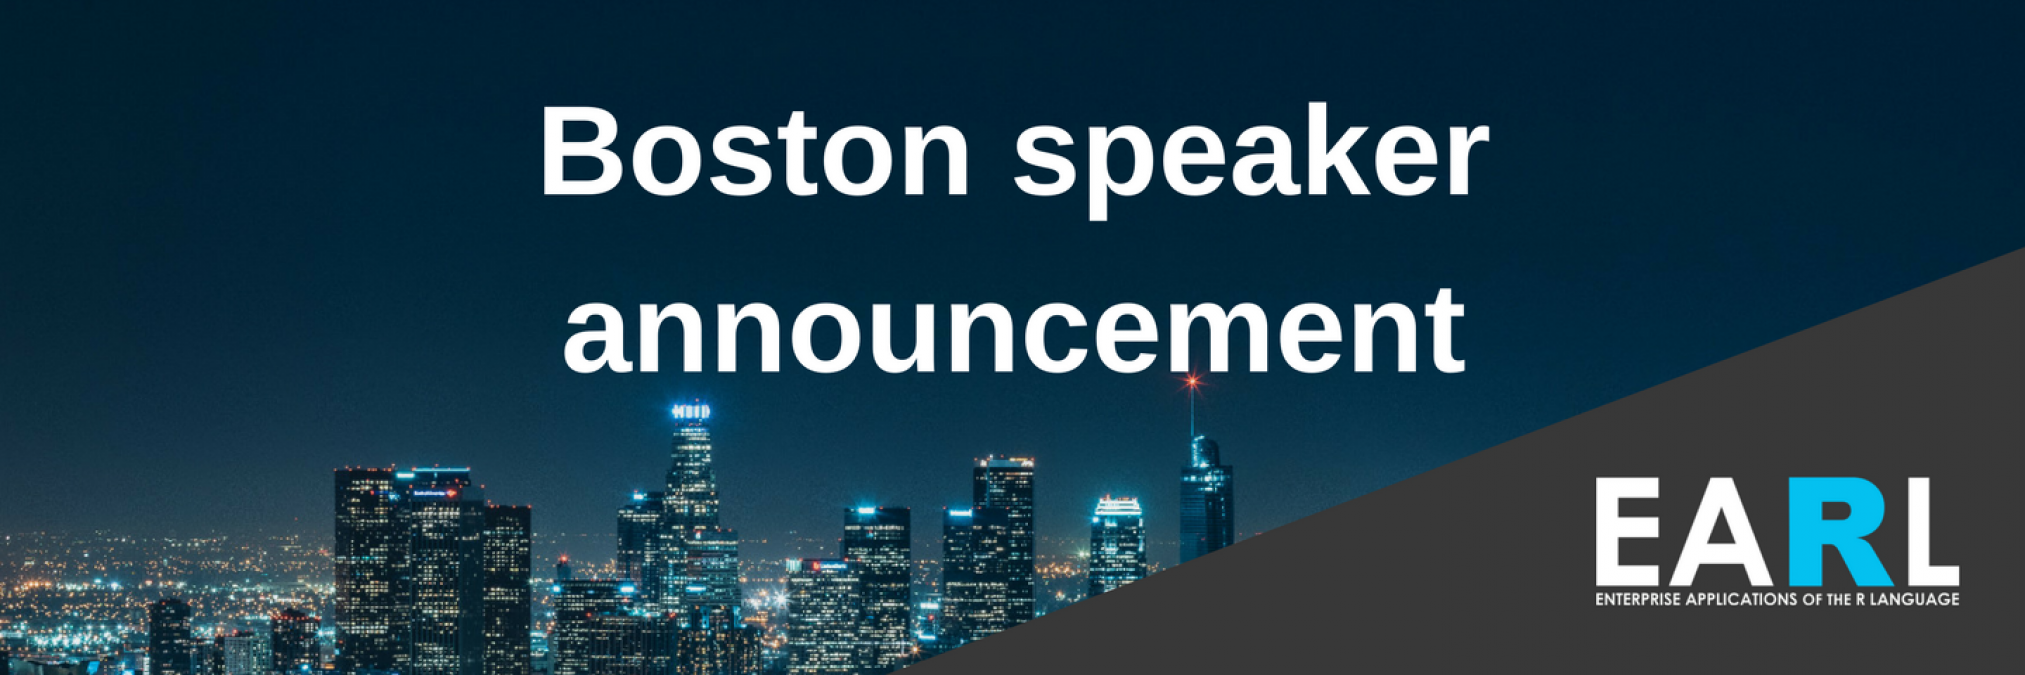 Boston EARL speaker announcement: Agenda now available